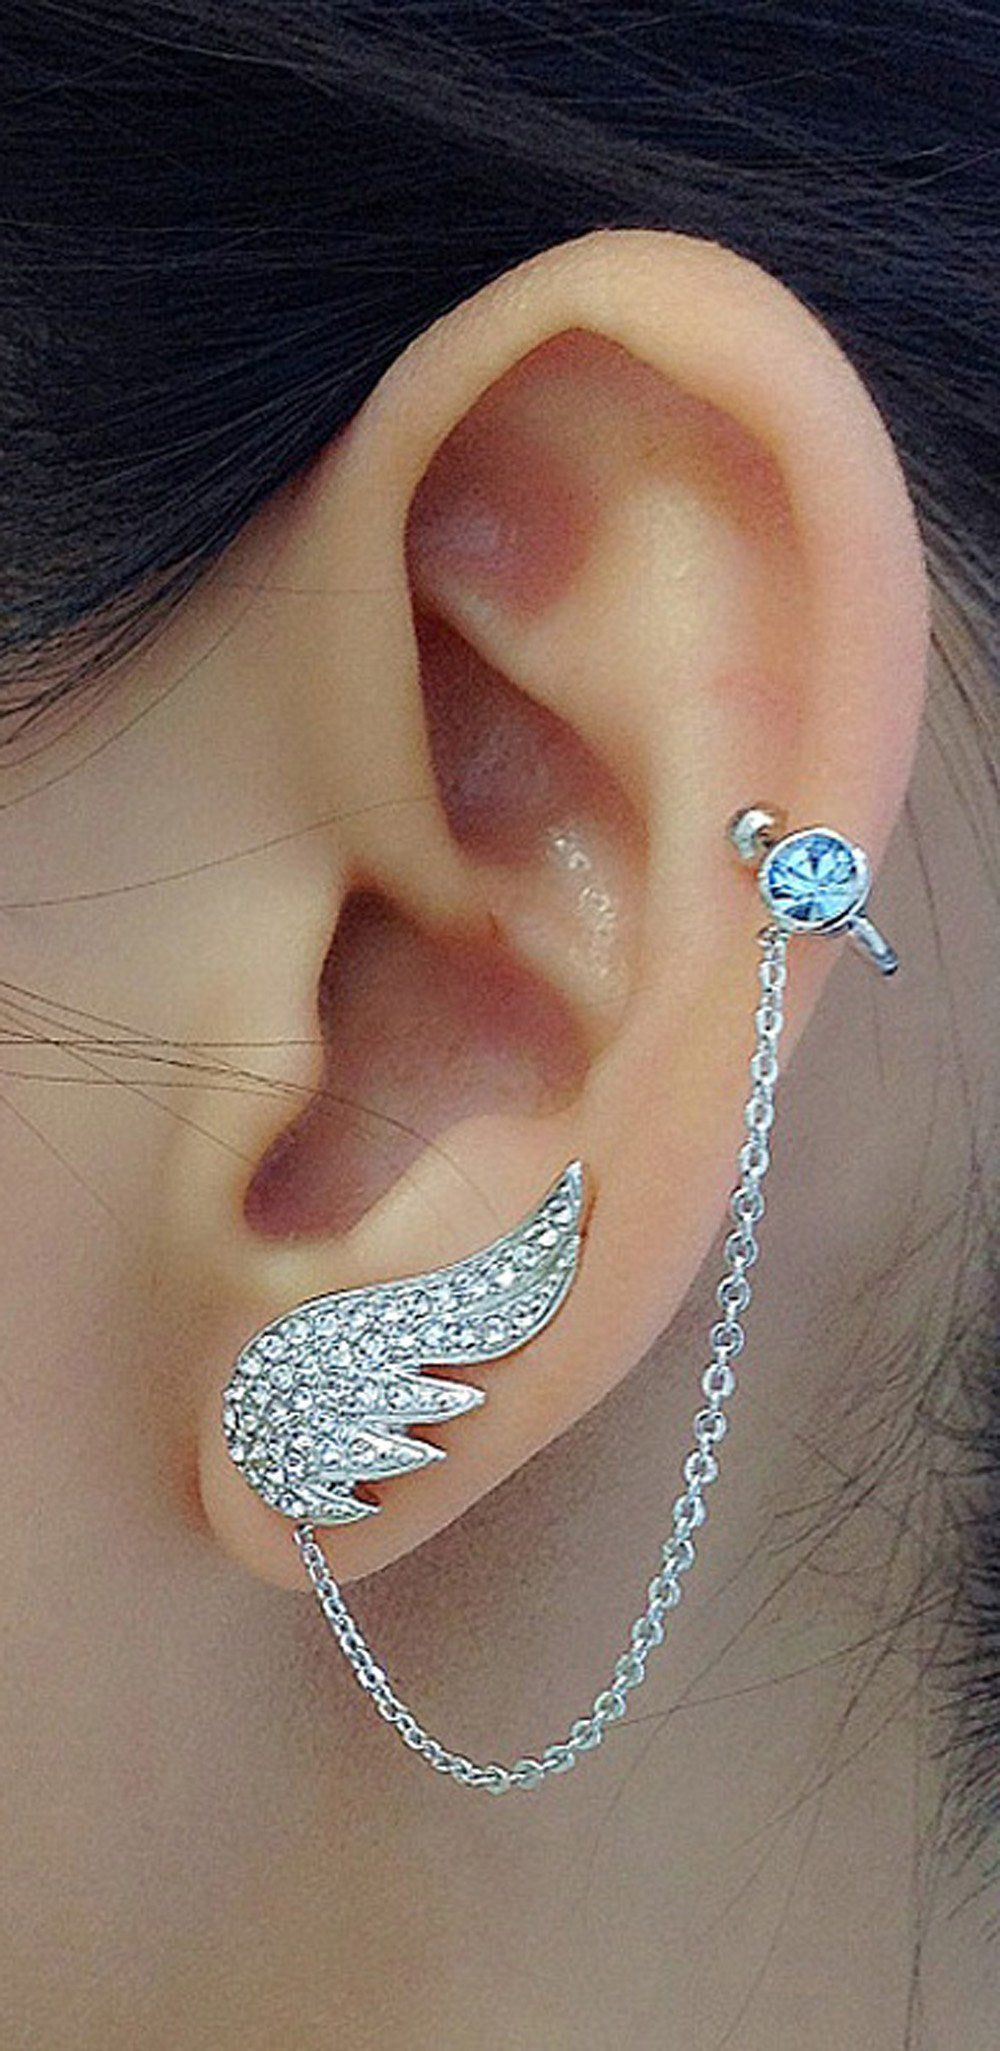 522866c5a Product Information - Product Type: Pair of Earring Cuffs (2) ear cuff  earring ear lobe cartilage helix angel wings